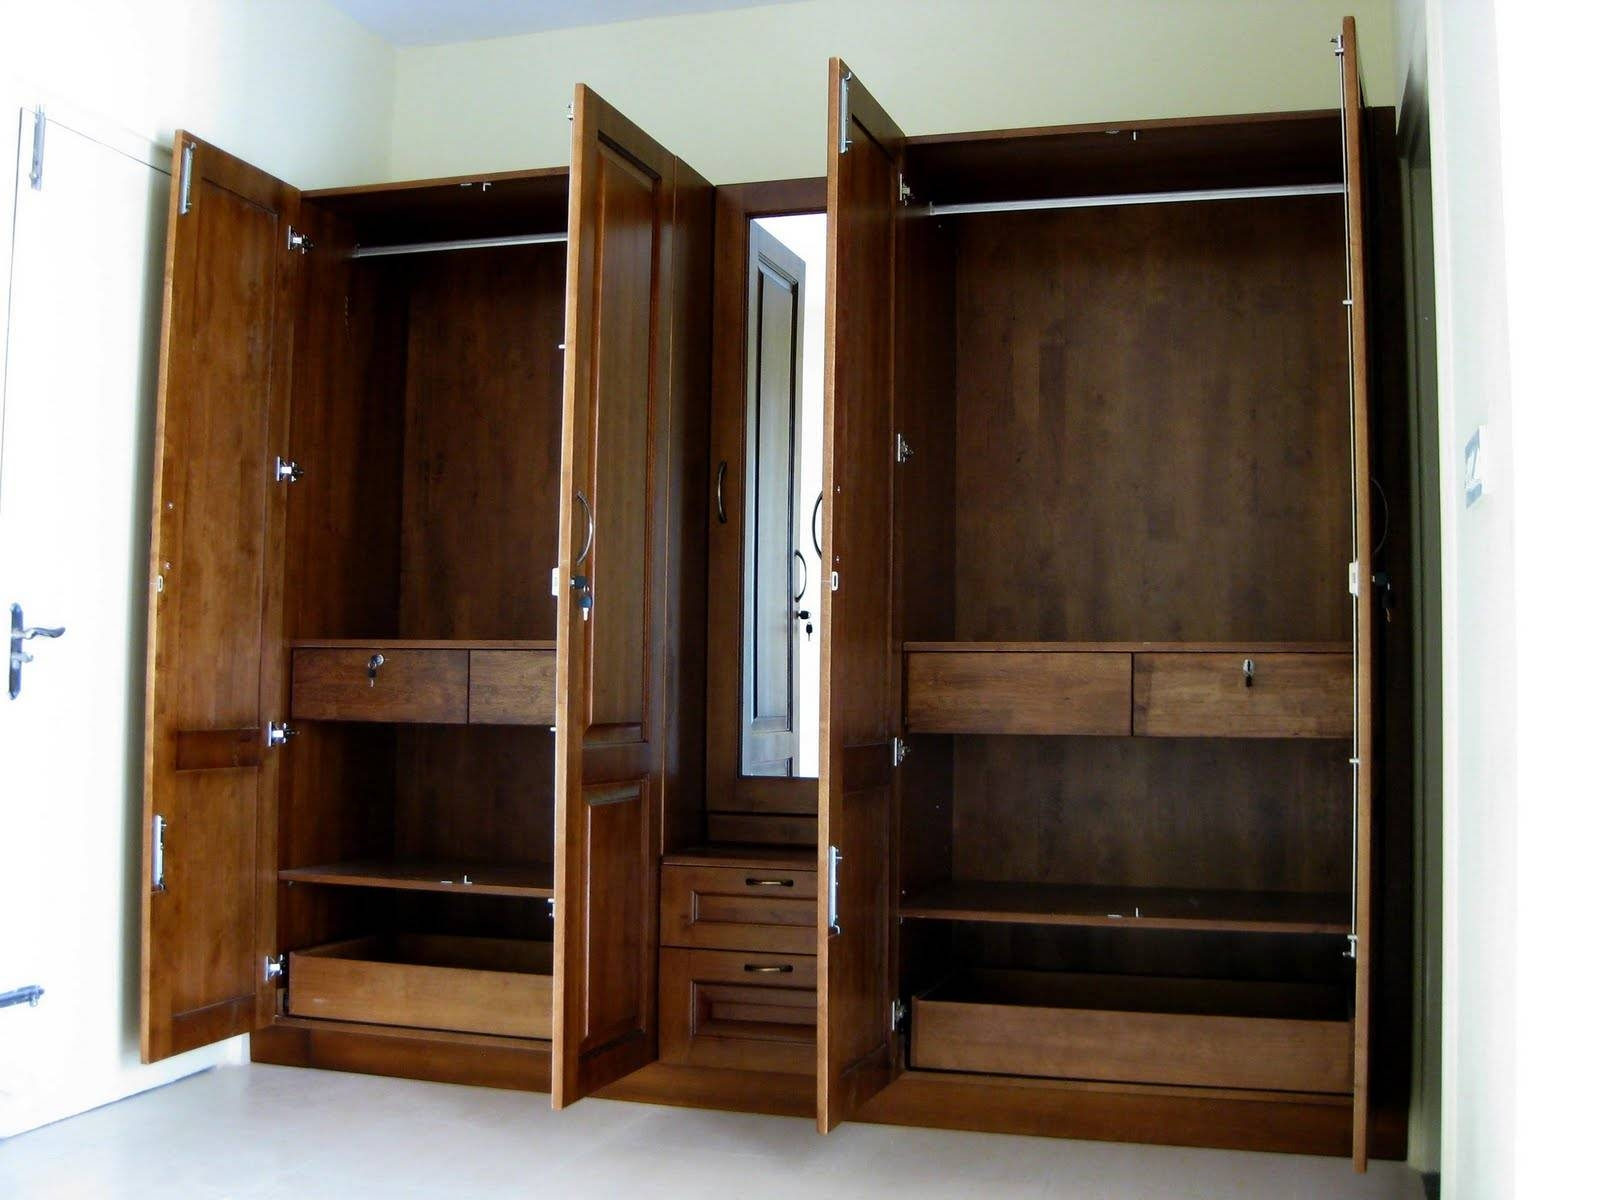 Favorite Dressing Table With Mirror And Wardrobe in Wardrobes And Dressing Tables (Image 5 of 15)